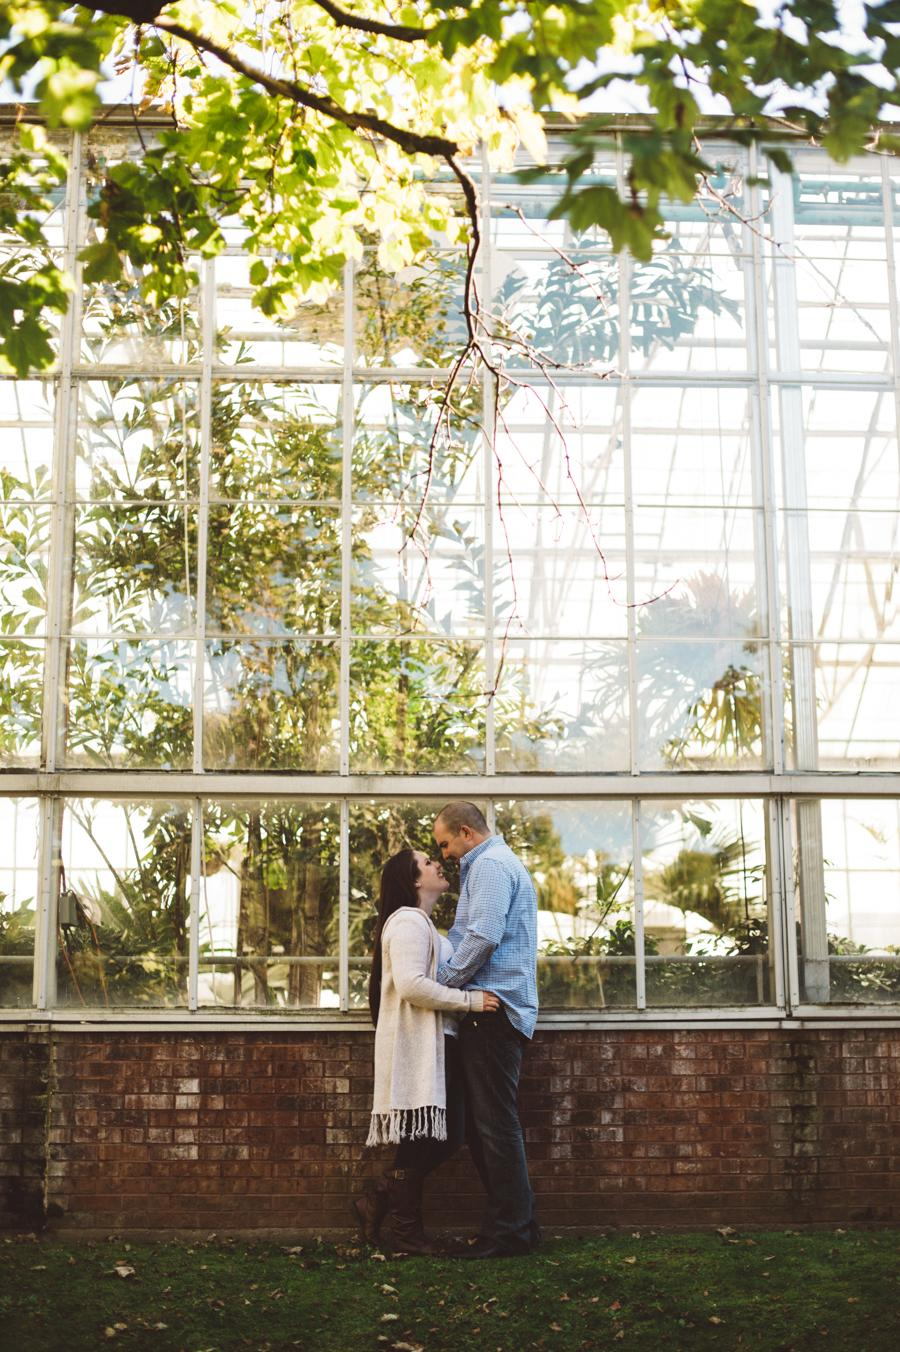 EverydayErosStudio-Fairmount-Horticulture-Center-Engagement-11